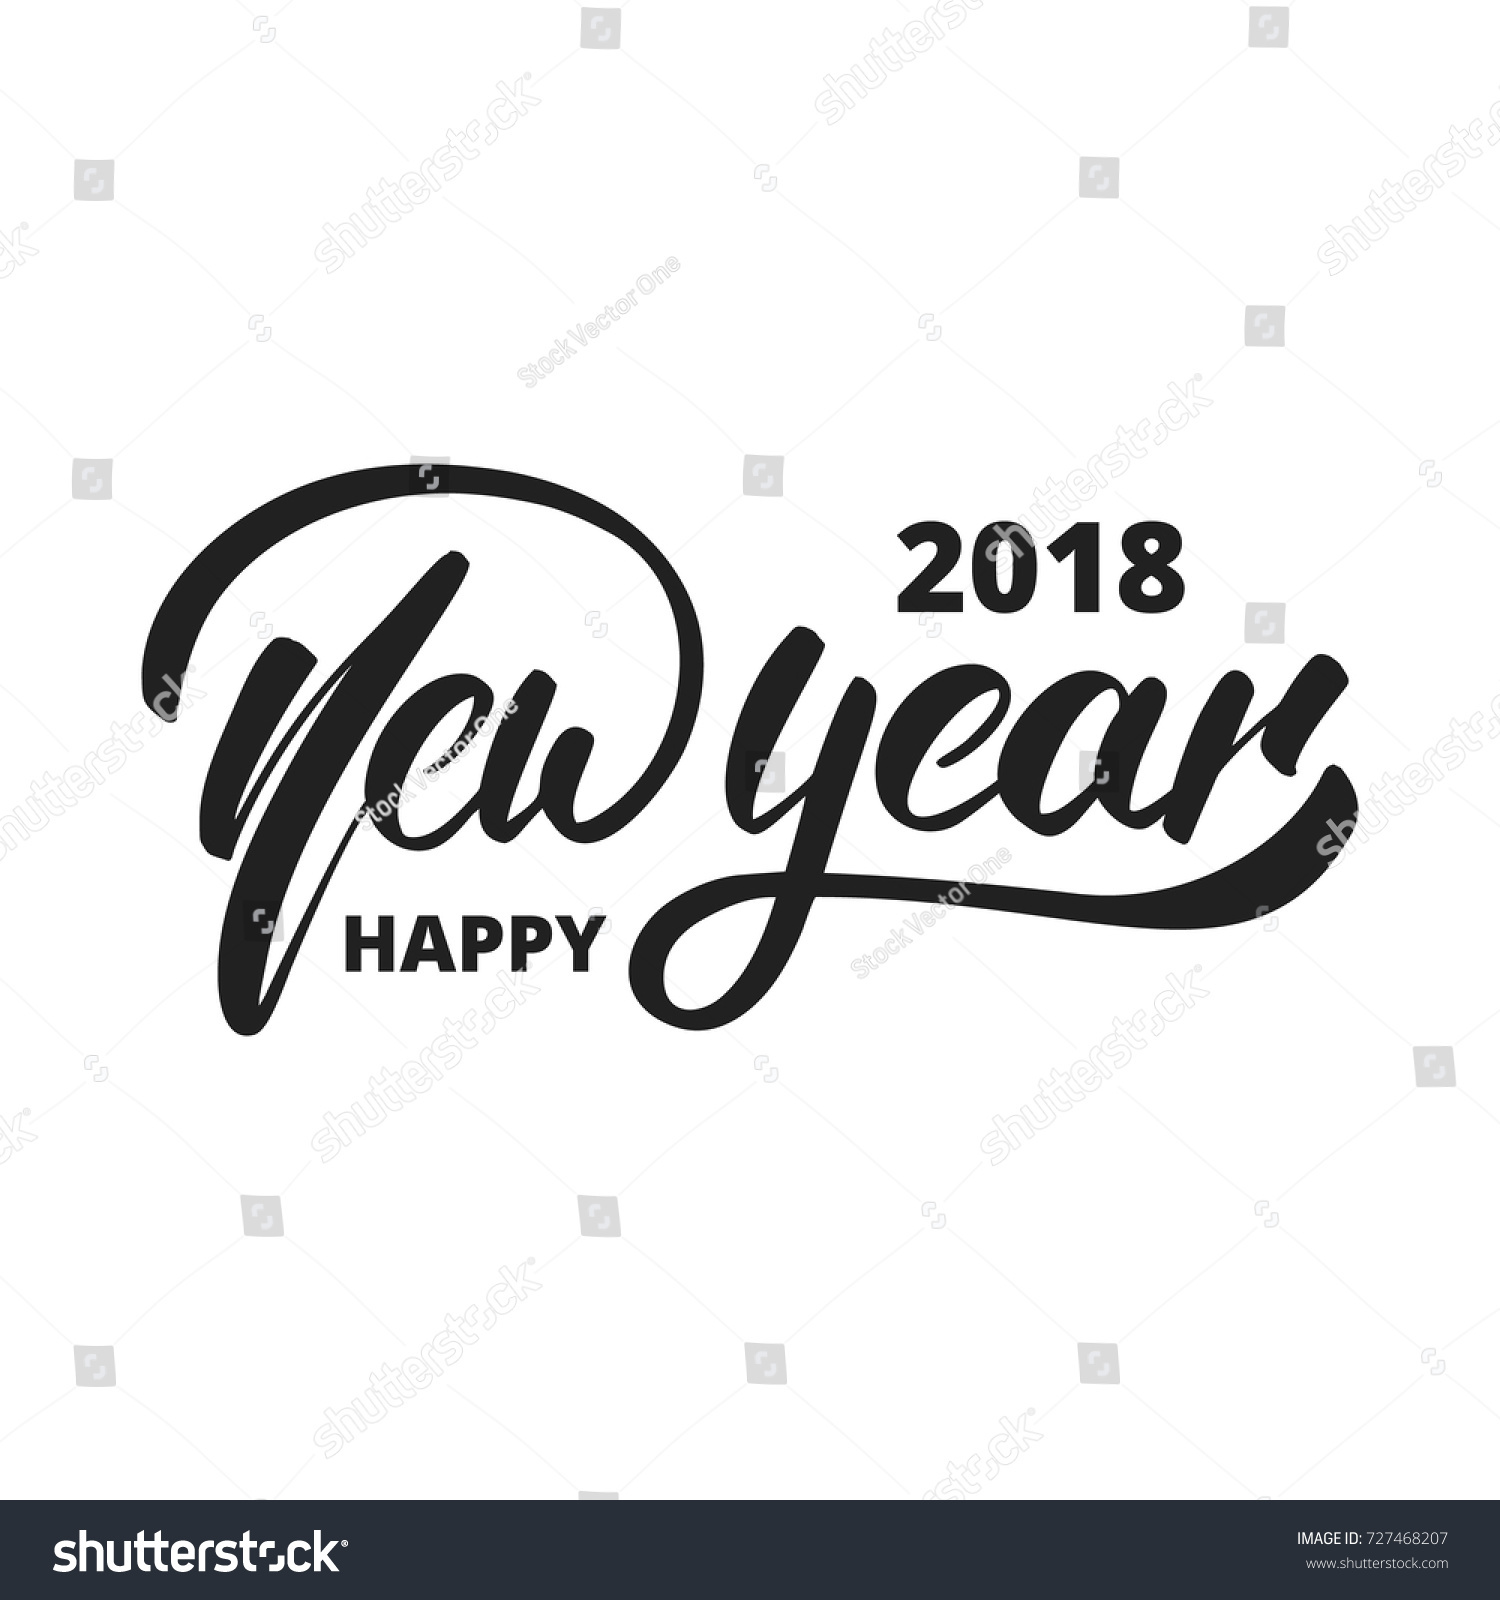 new year 2018 hand drawn logo for new year card poster design etc